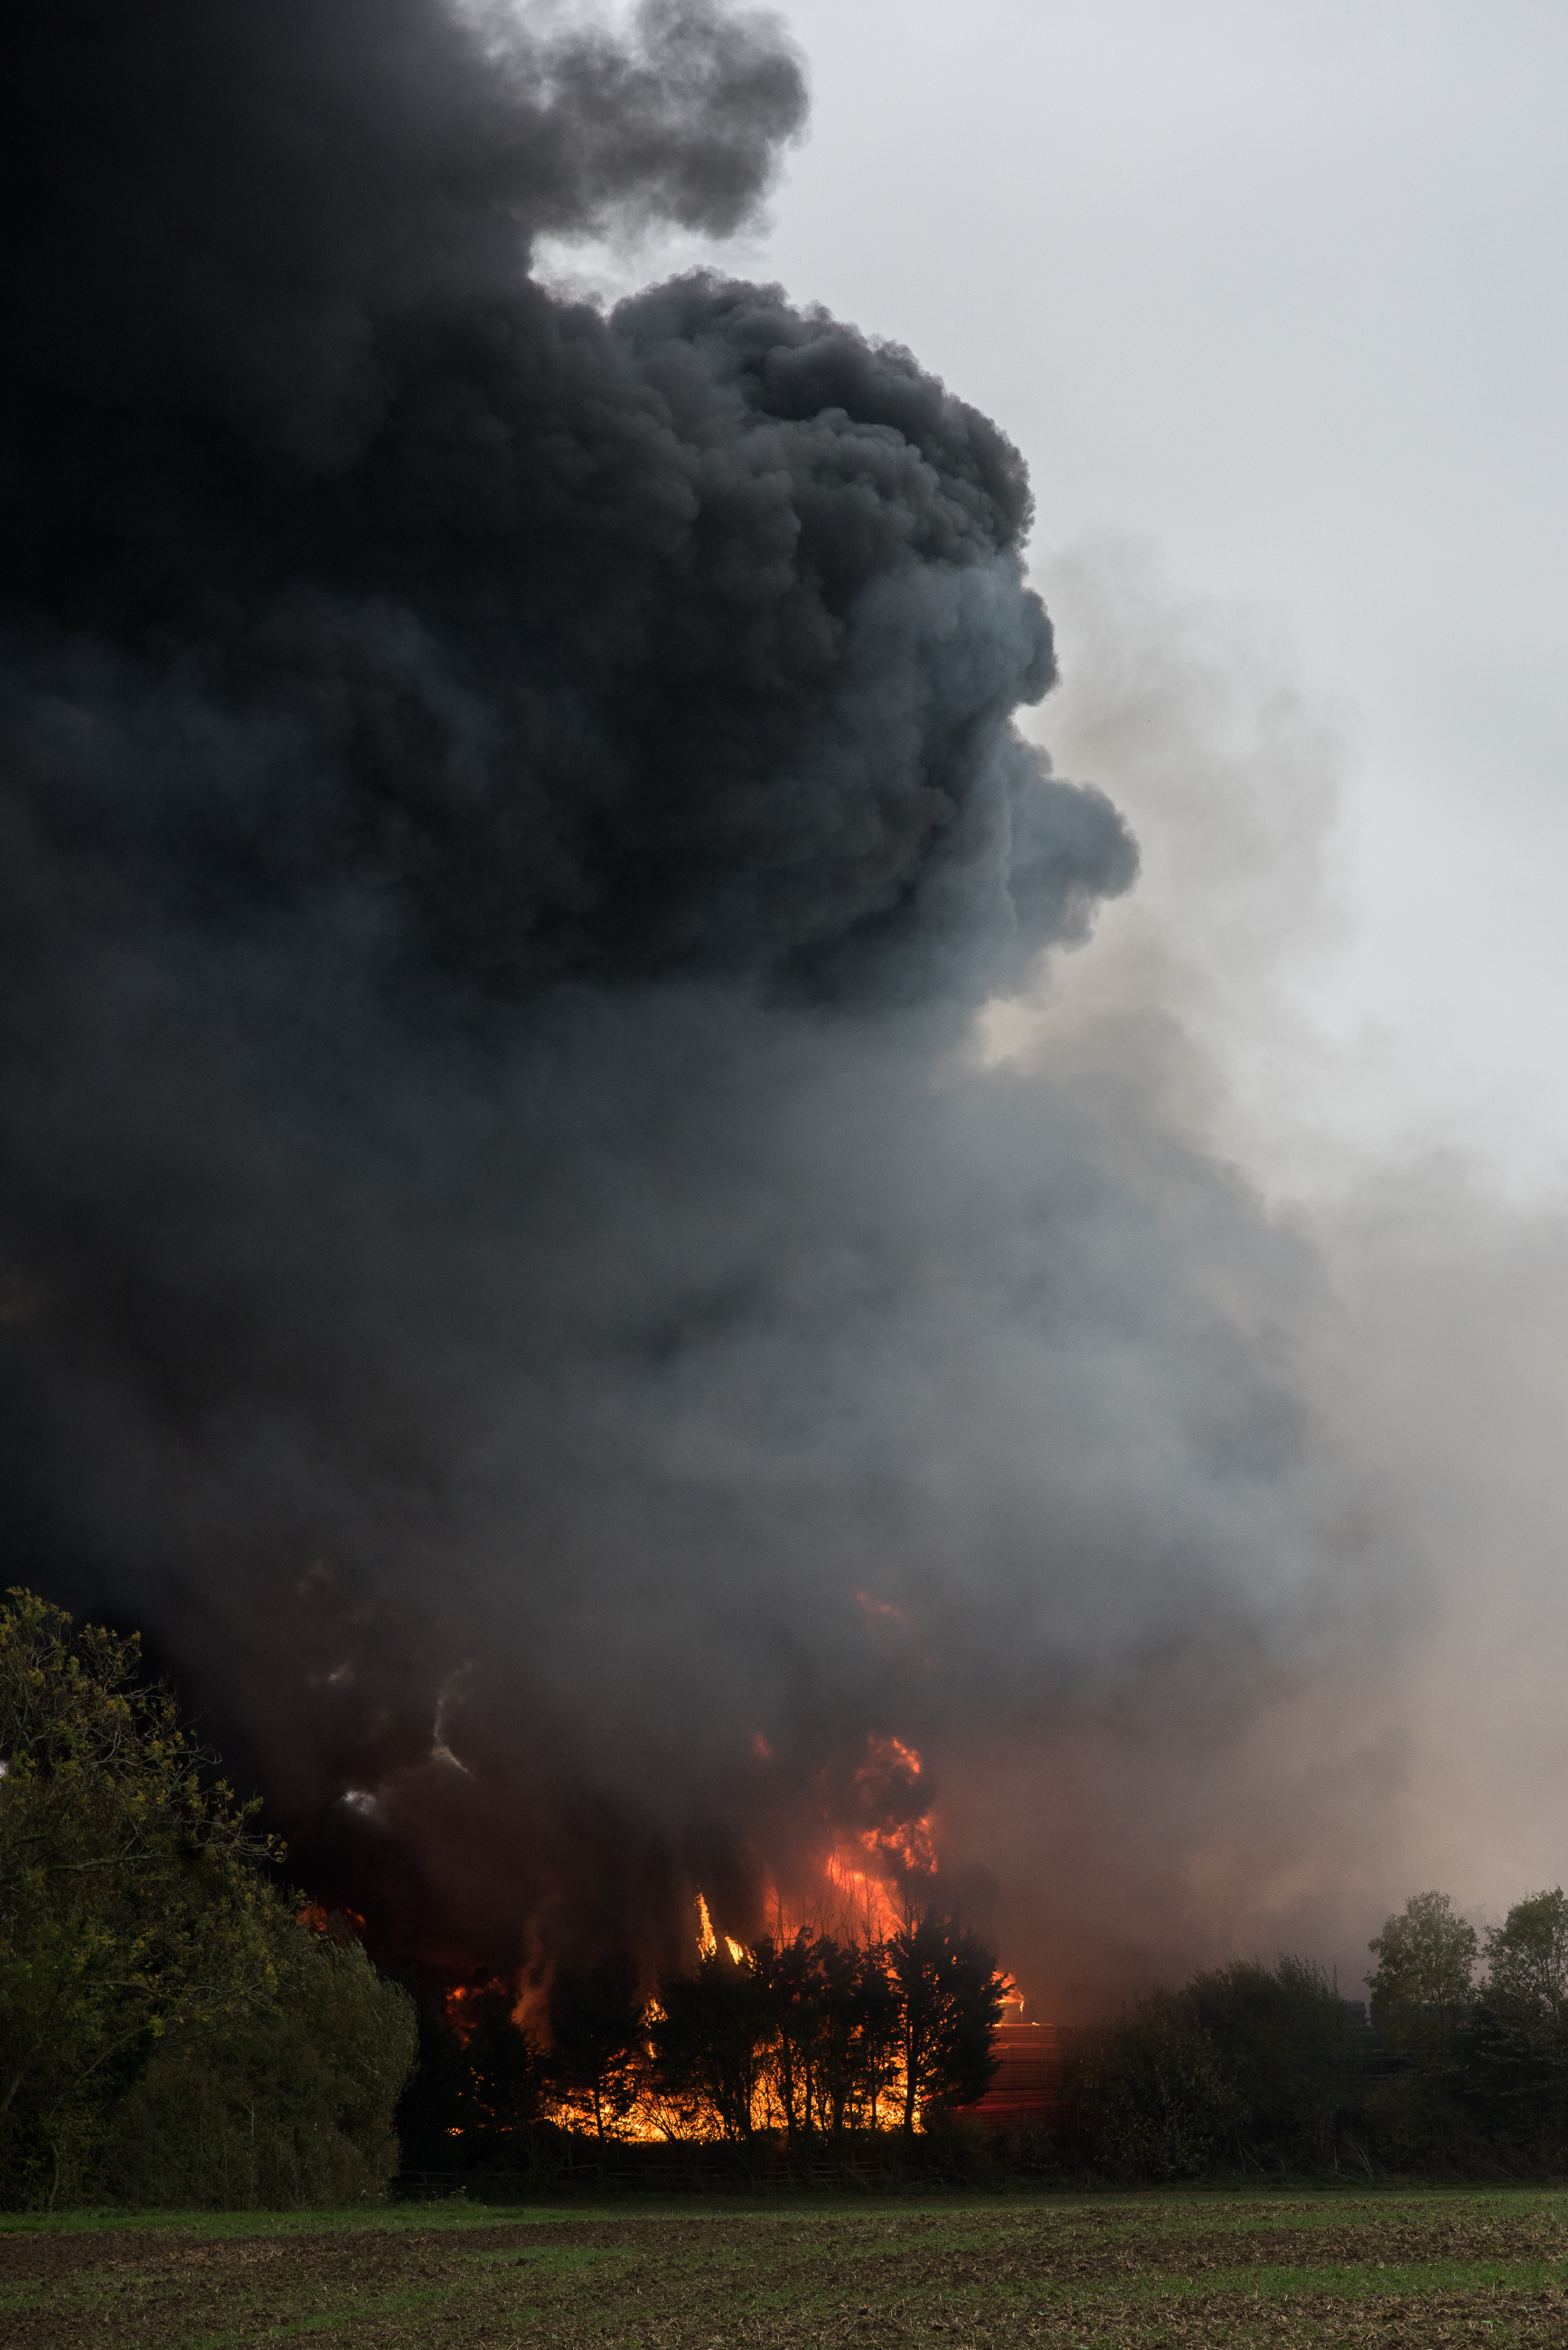 Goldicote business park fire, Close To Stratford-upon-Avon, England 2018